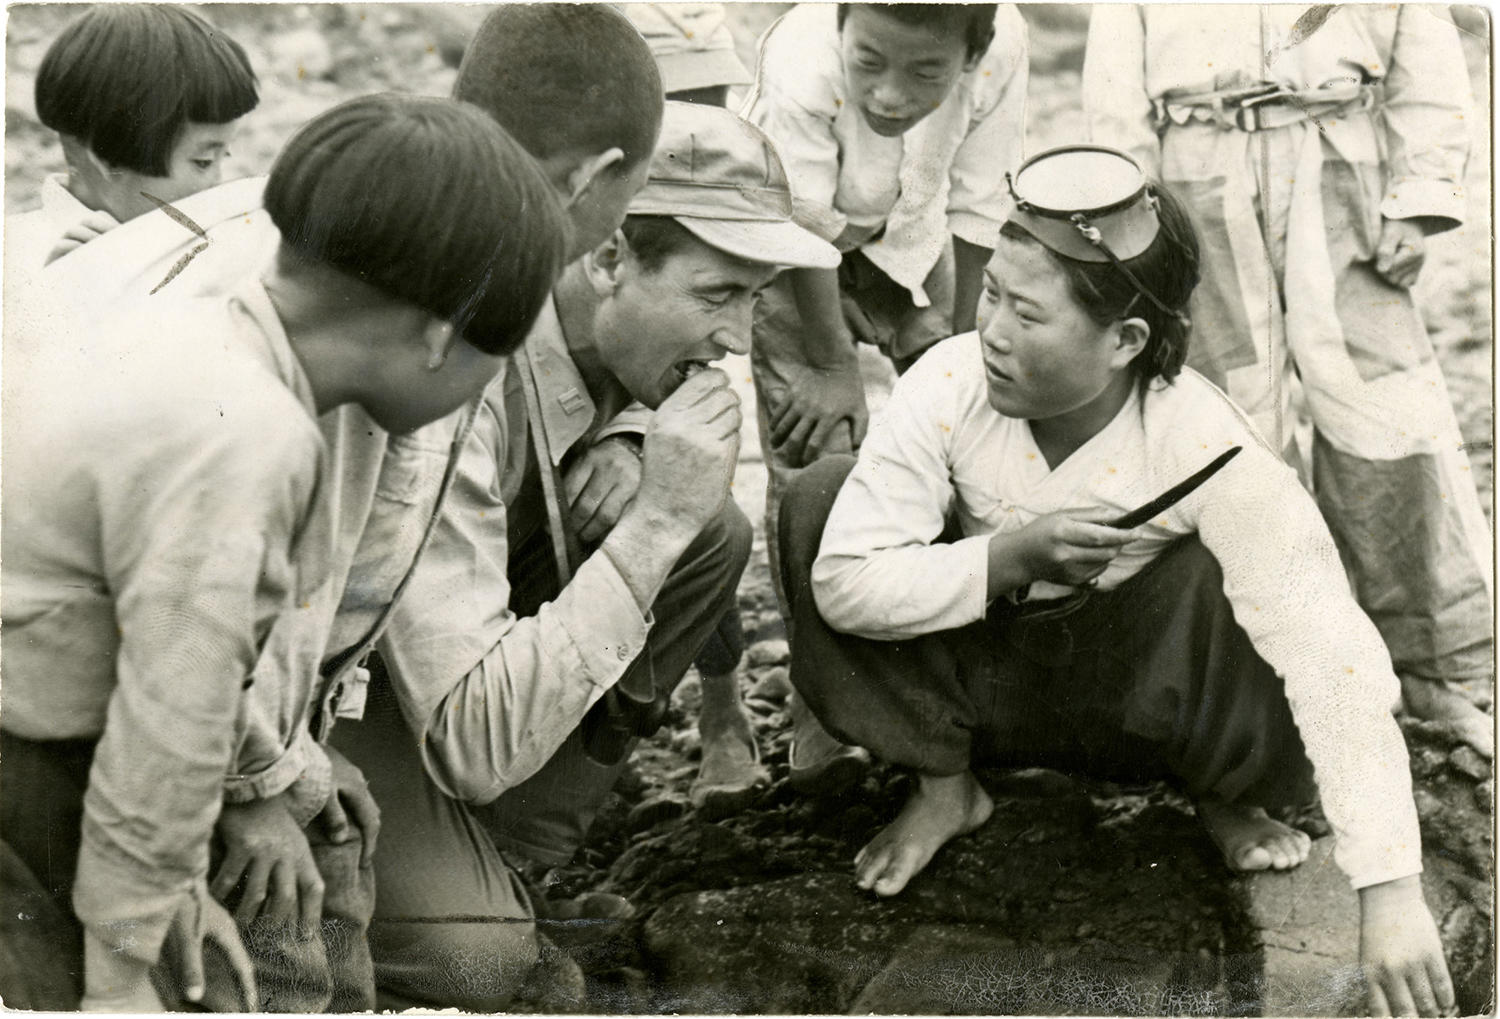 """While exploring a Korean village, Williams stopped to eat a live clam, offered by a local diving woman. Children watch his reaction as he eats. <a href=""""http://collection.baseballhall.org/islandora/object/islandora%3A501831"""">PASTIME</a> (National Baseball Hall of Fame)"""